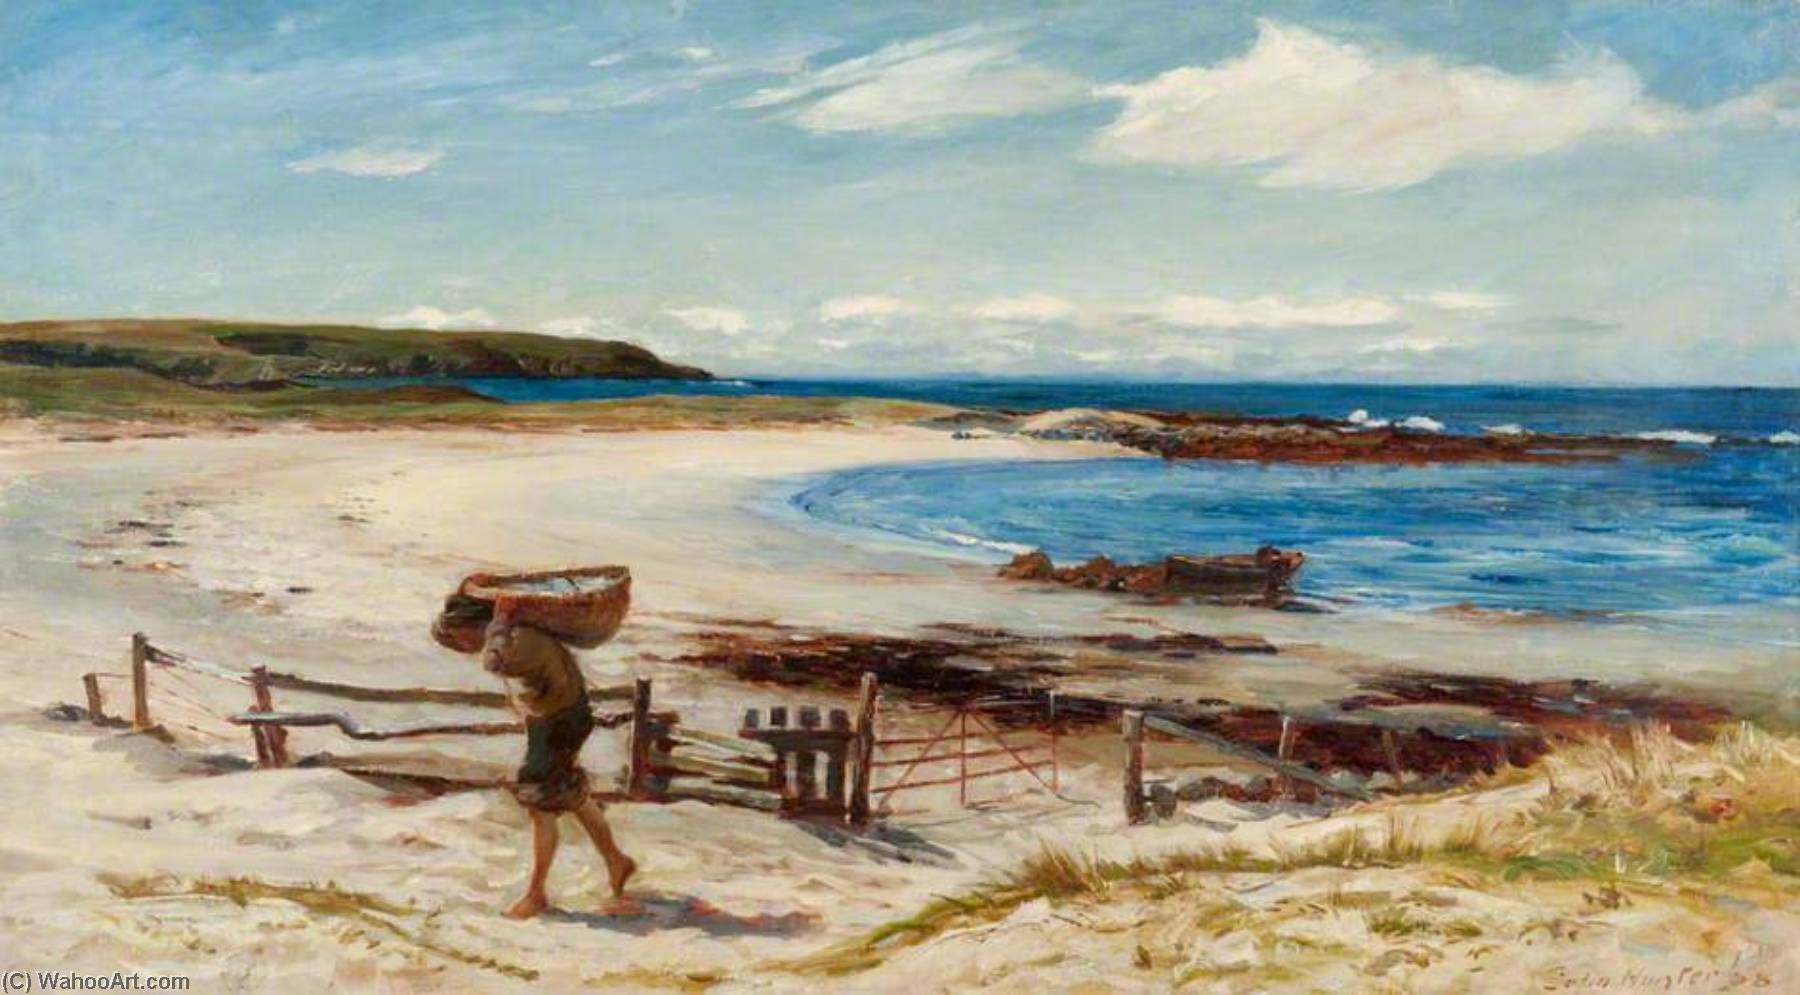 On the East Coast of Scotland, 1888 by Colin Hunter | Museum Art Reproductions Colin Hunter | ArtsDot.com